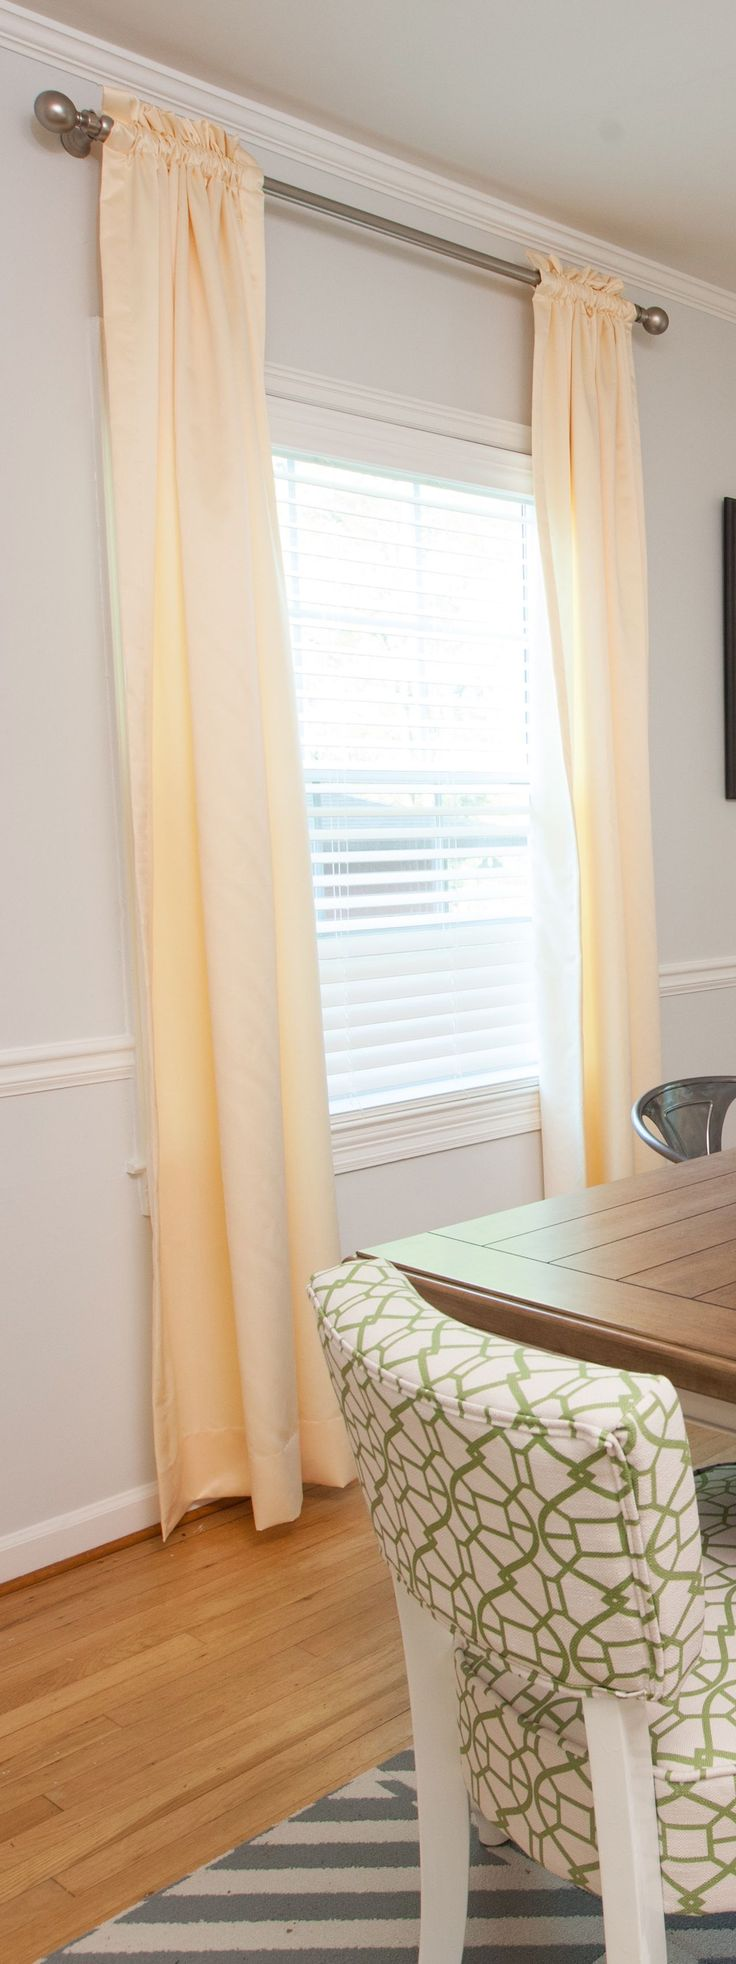 25 Best Ideas About Wood Window Valances On Pinterest